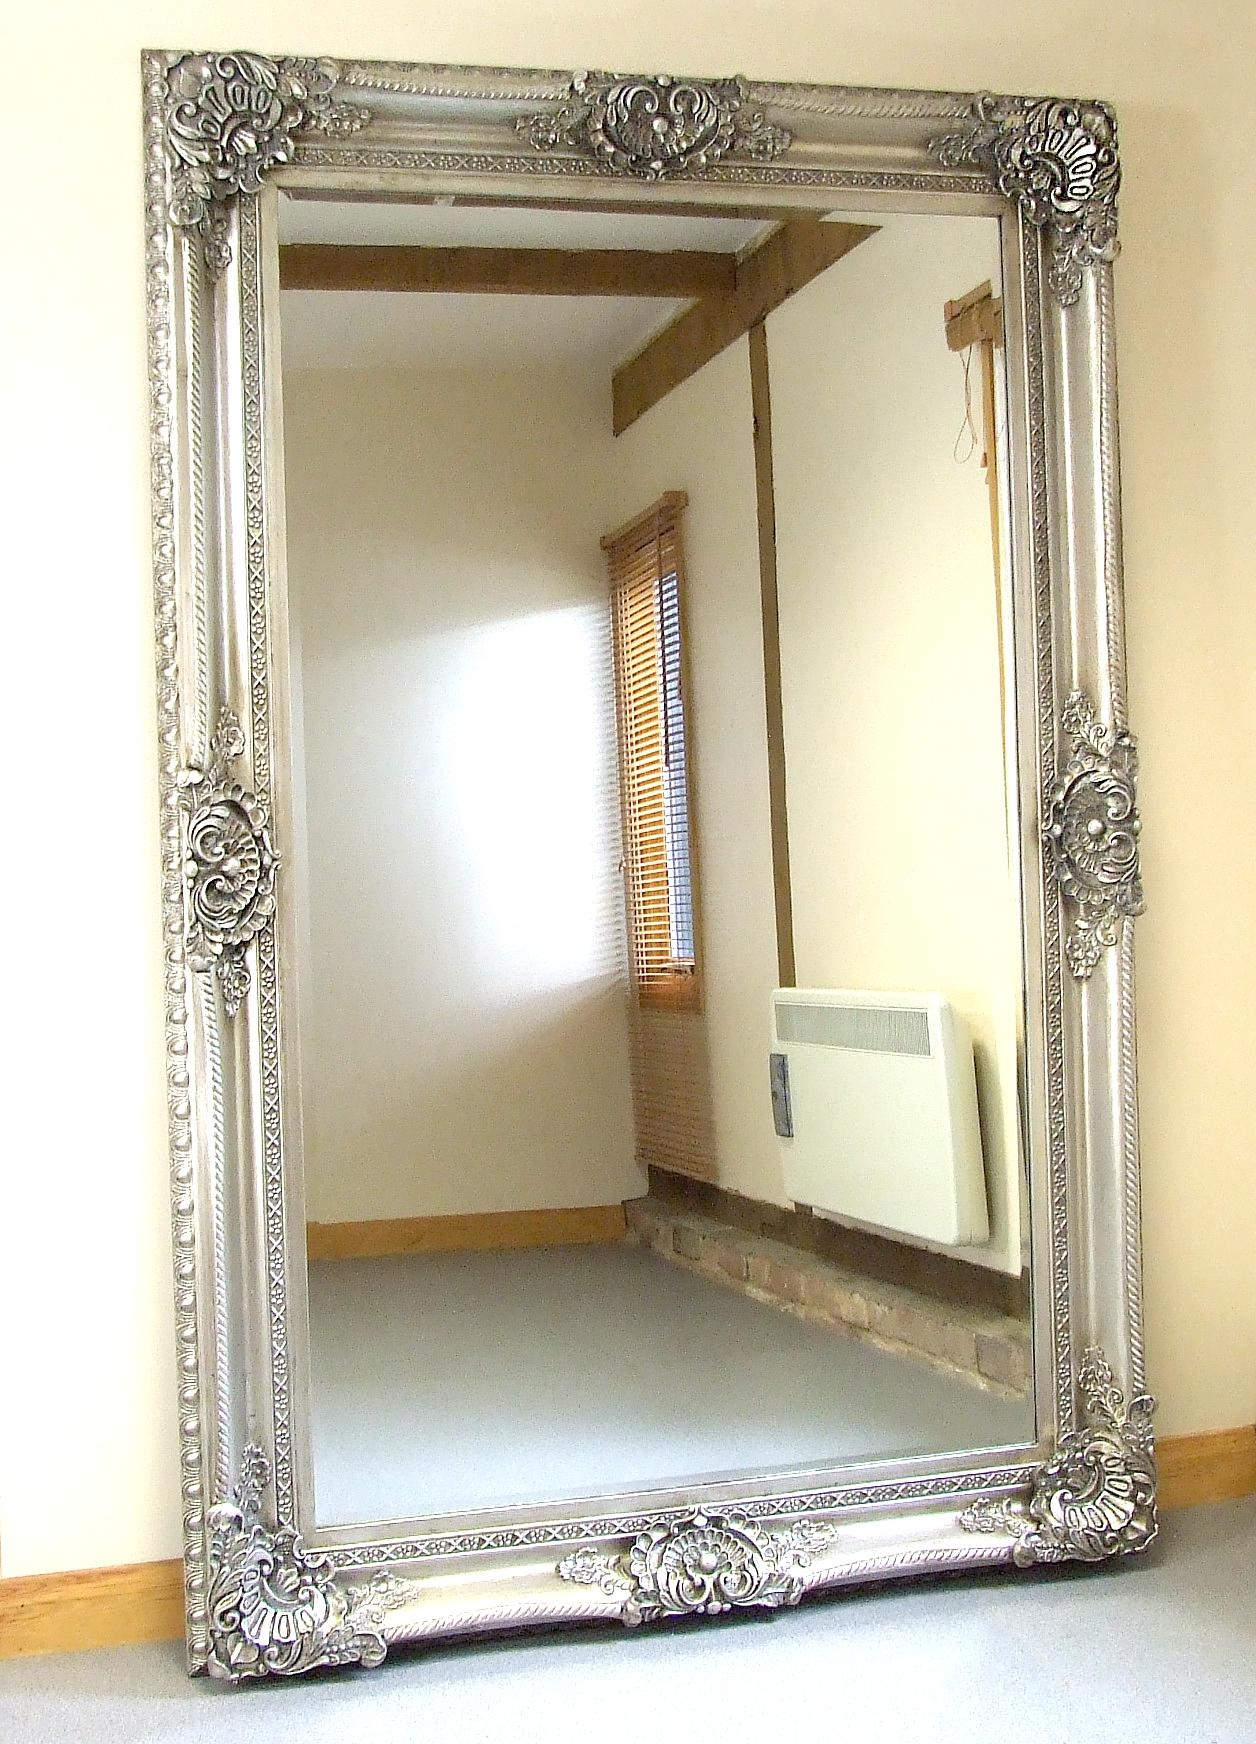 Decorating: Seville Ornate Extra Large French Full Length Wall Within Antique Full Length Wall Mirror (Image 11 of 20)